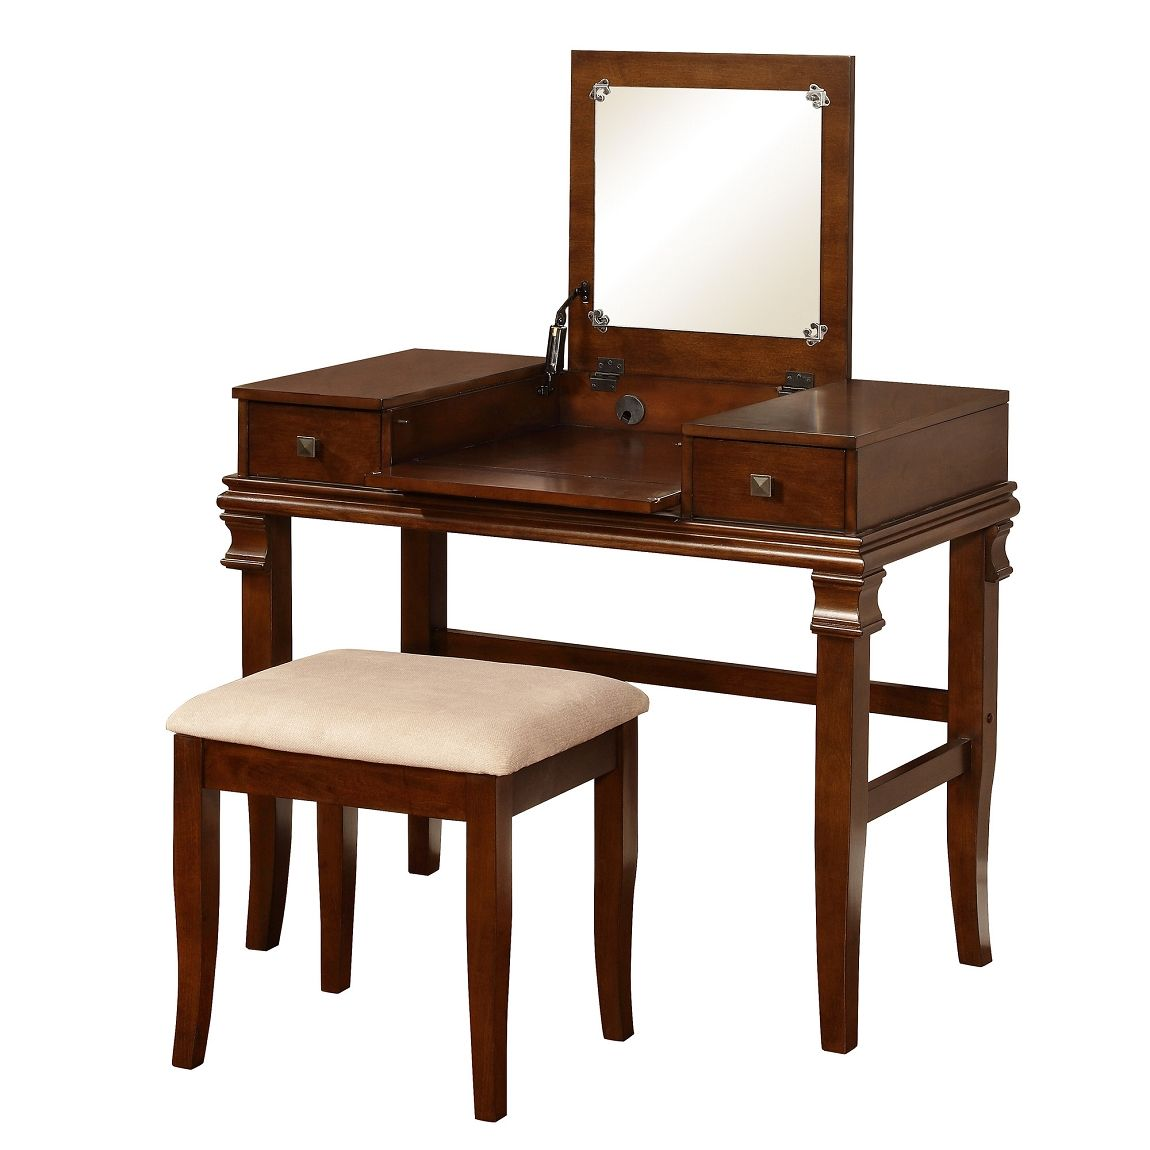 Linon angela vanity set with mirror home furnishings pinterest